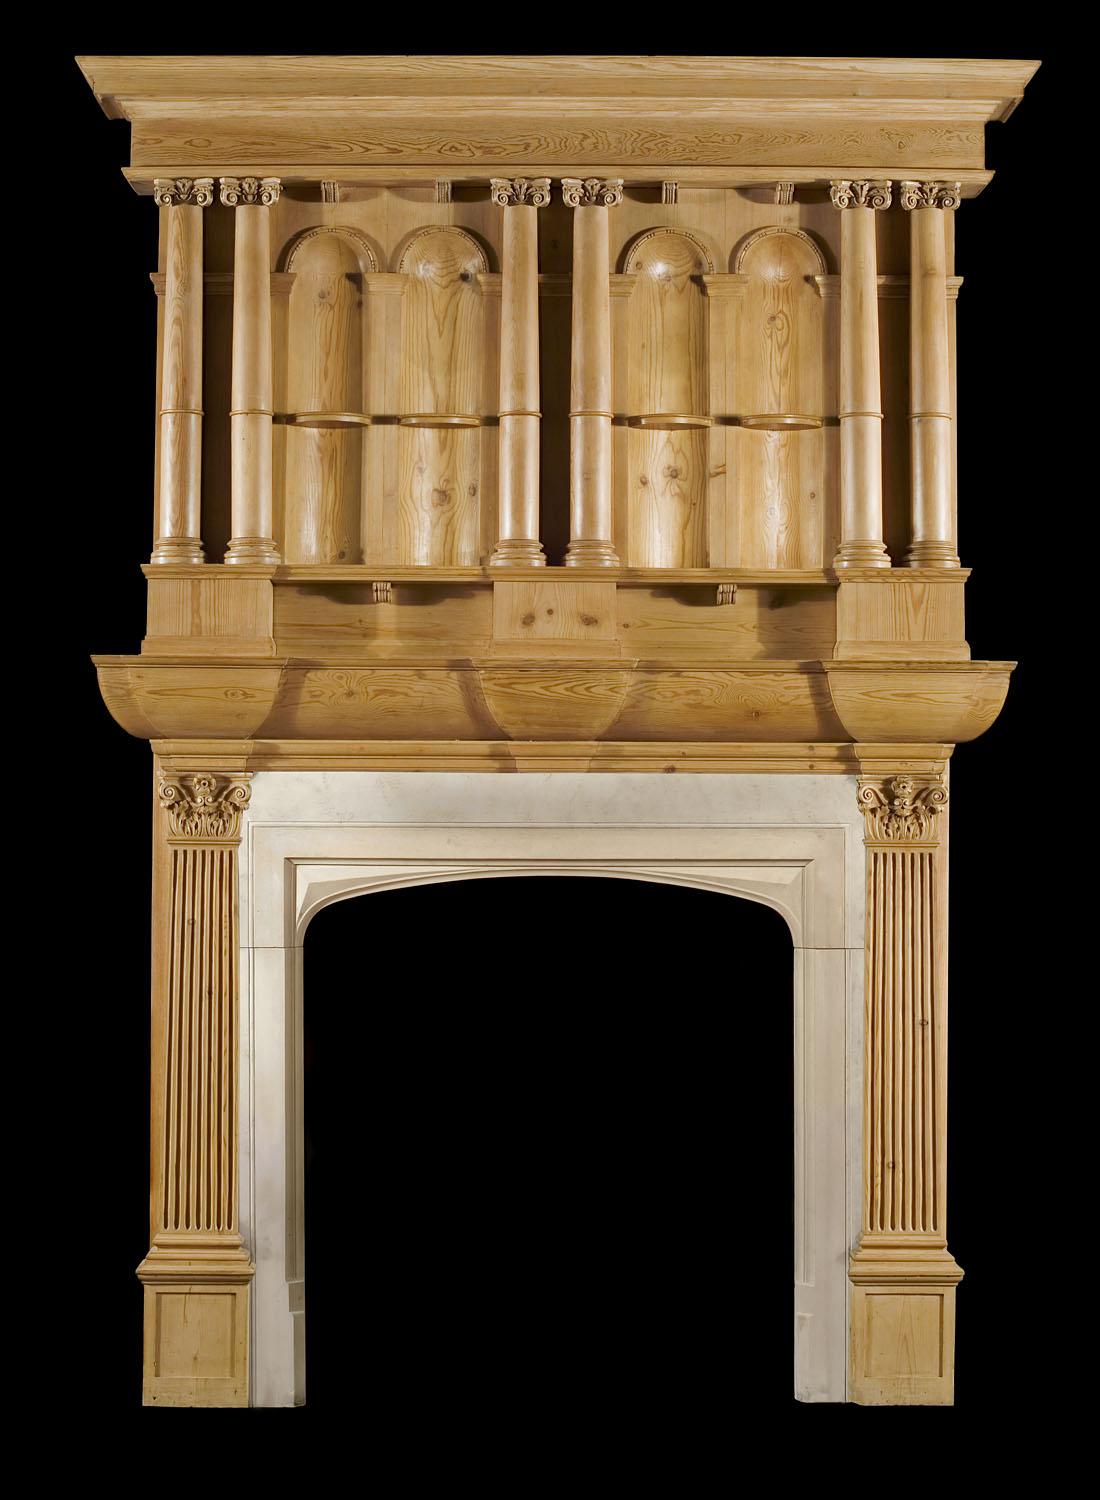 A Pine Gothic Revival Chimneypiece and Overmantel